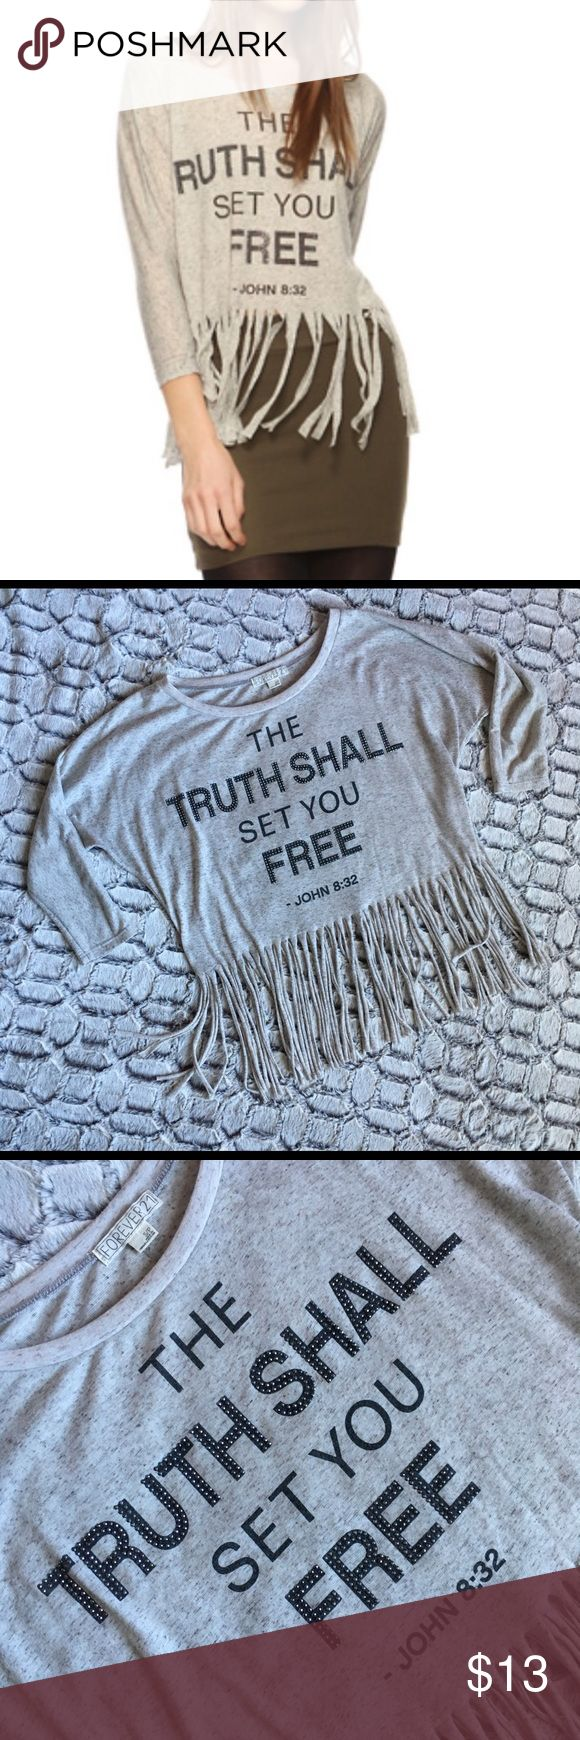 """FOREVER 21 """"John 8:32"""" Fringe Quarter Length Top New, never worn Forever 21 """"The Truth Shall Set You Free - John 3:16"""" quarter Length scoop neck fringe top. Material is semi see through but warmer. Perfect for fall or layered. Size XS 🌟 Smoke and pet free home Forever 21 Tops Crop Tops"""